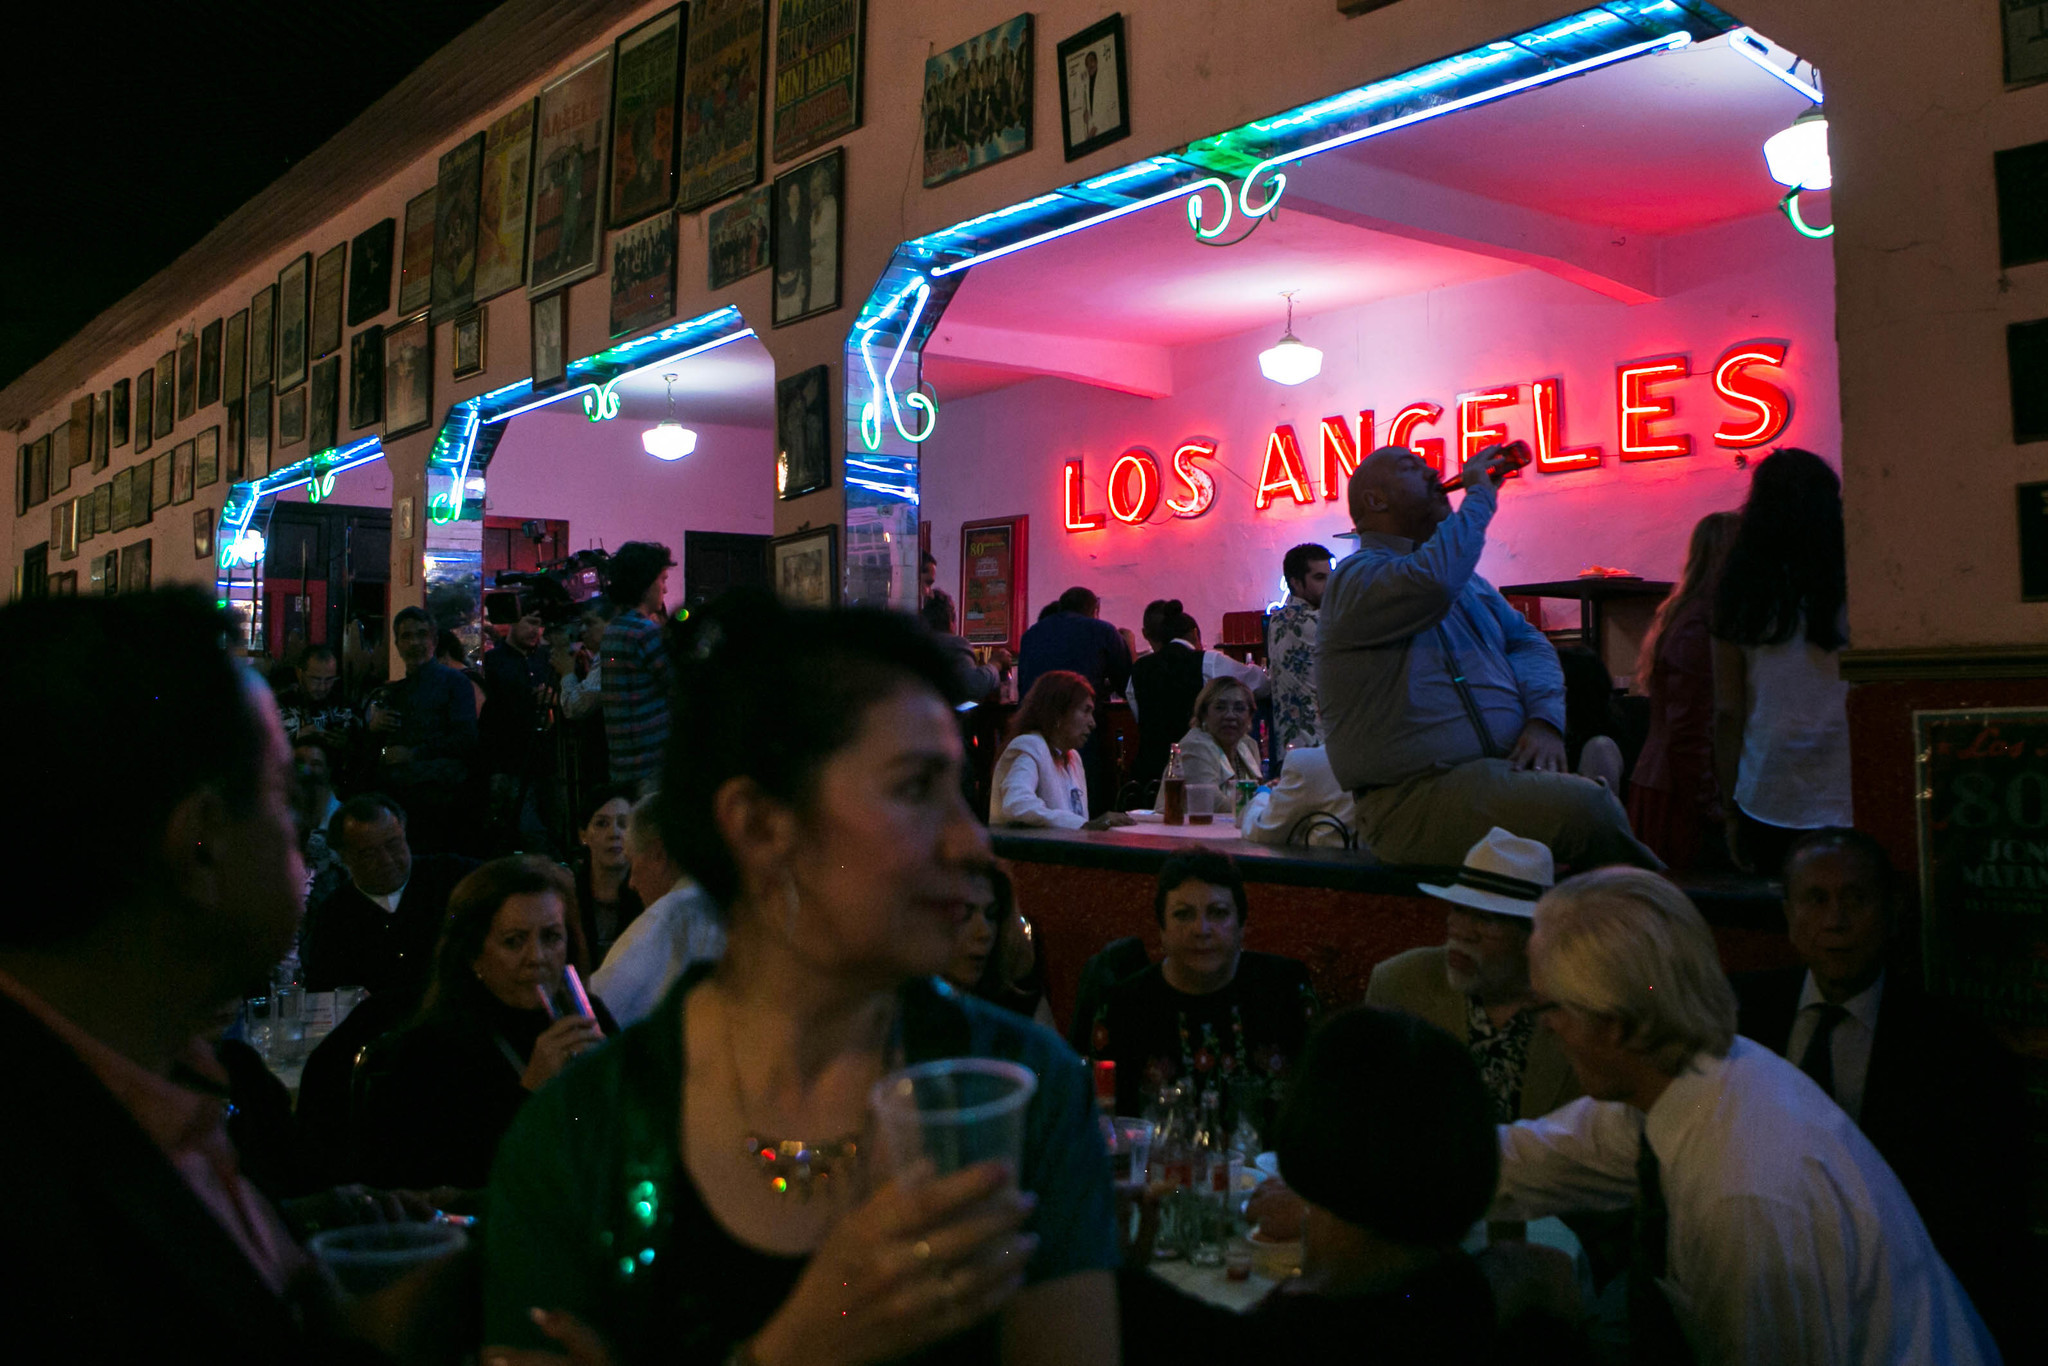 Salon Los Angeles' live bands rock the house with bachata, cumbia and salsa music among others.